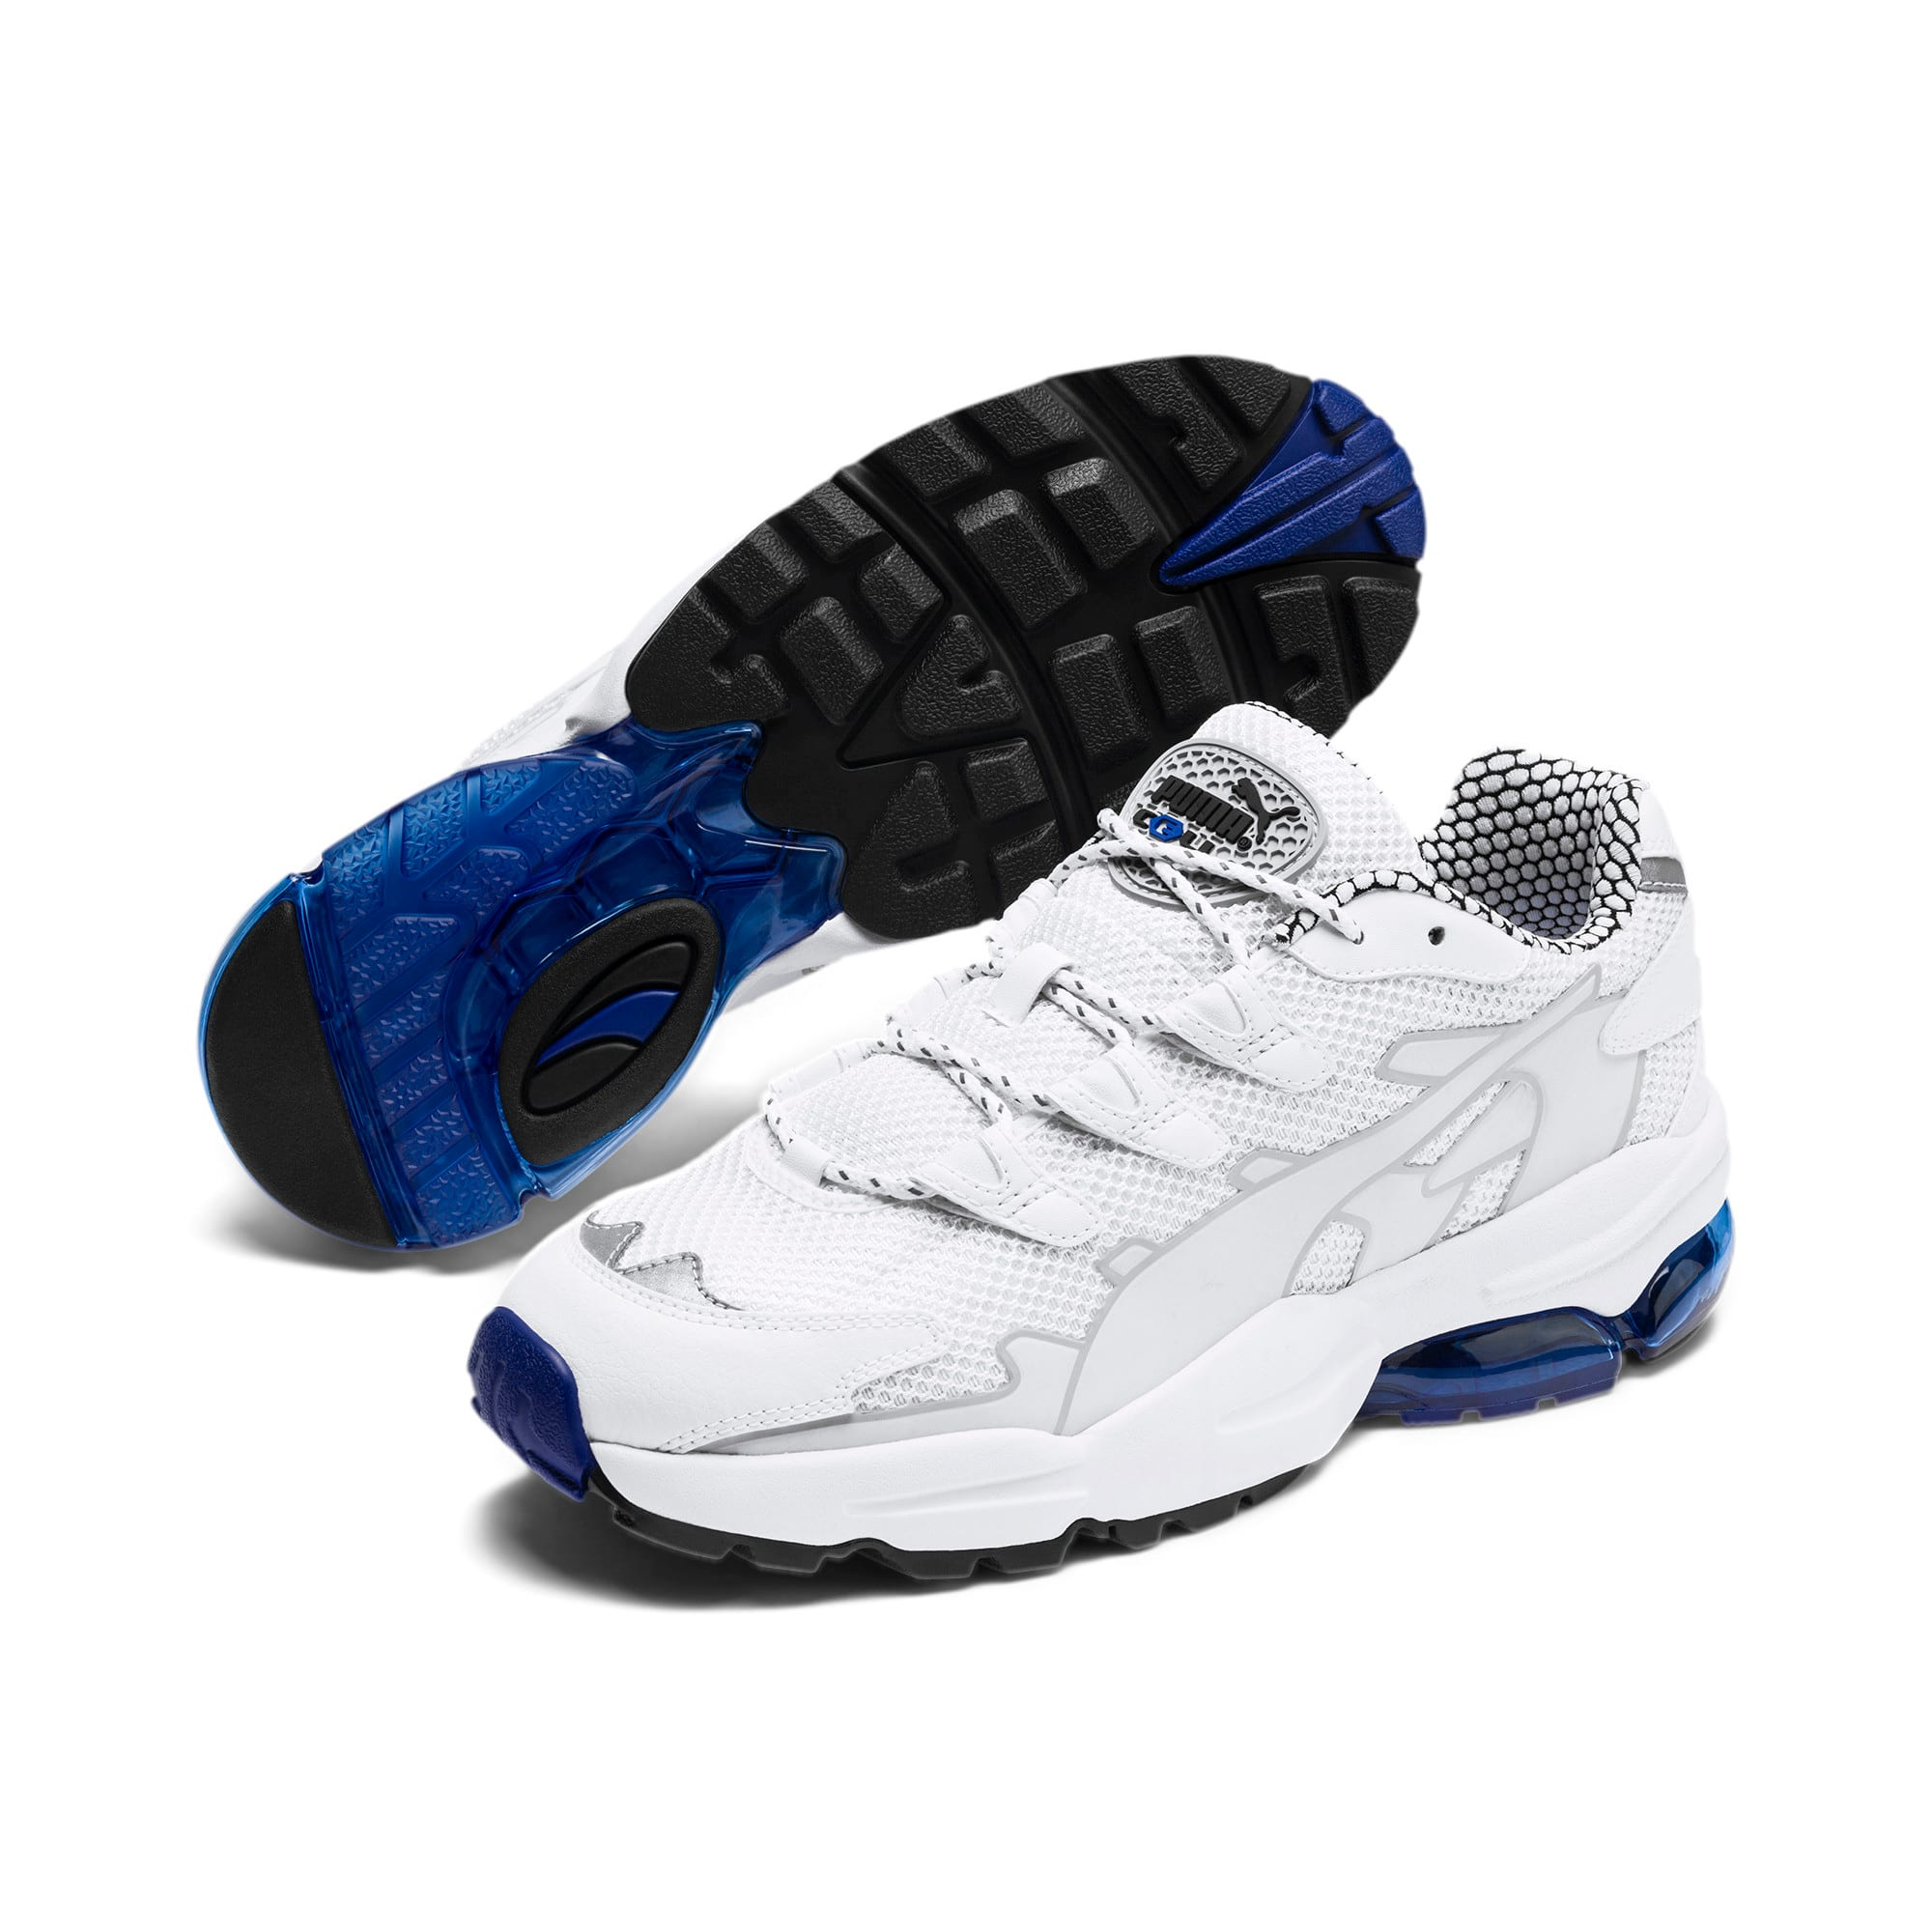 Thumbnail 3 of CELL Alien Kotto sportschoenen, Puma White-Puma White, medium